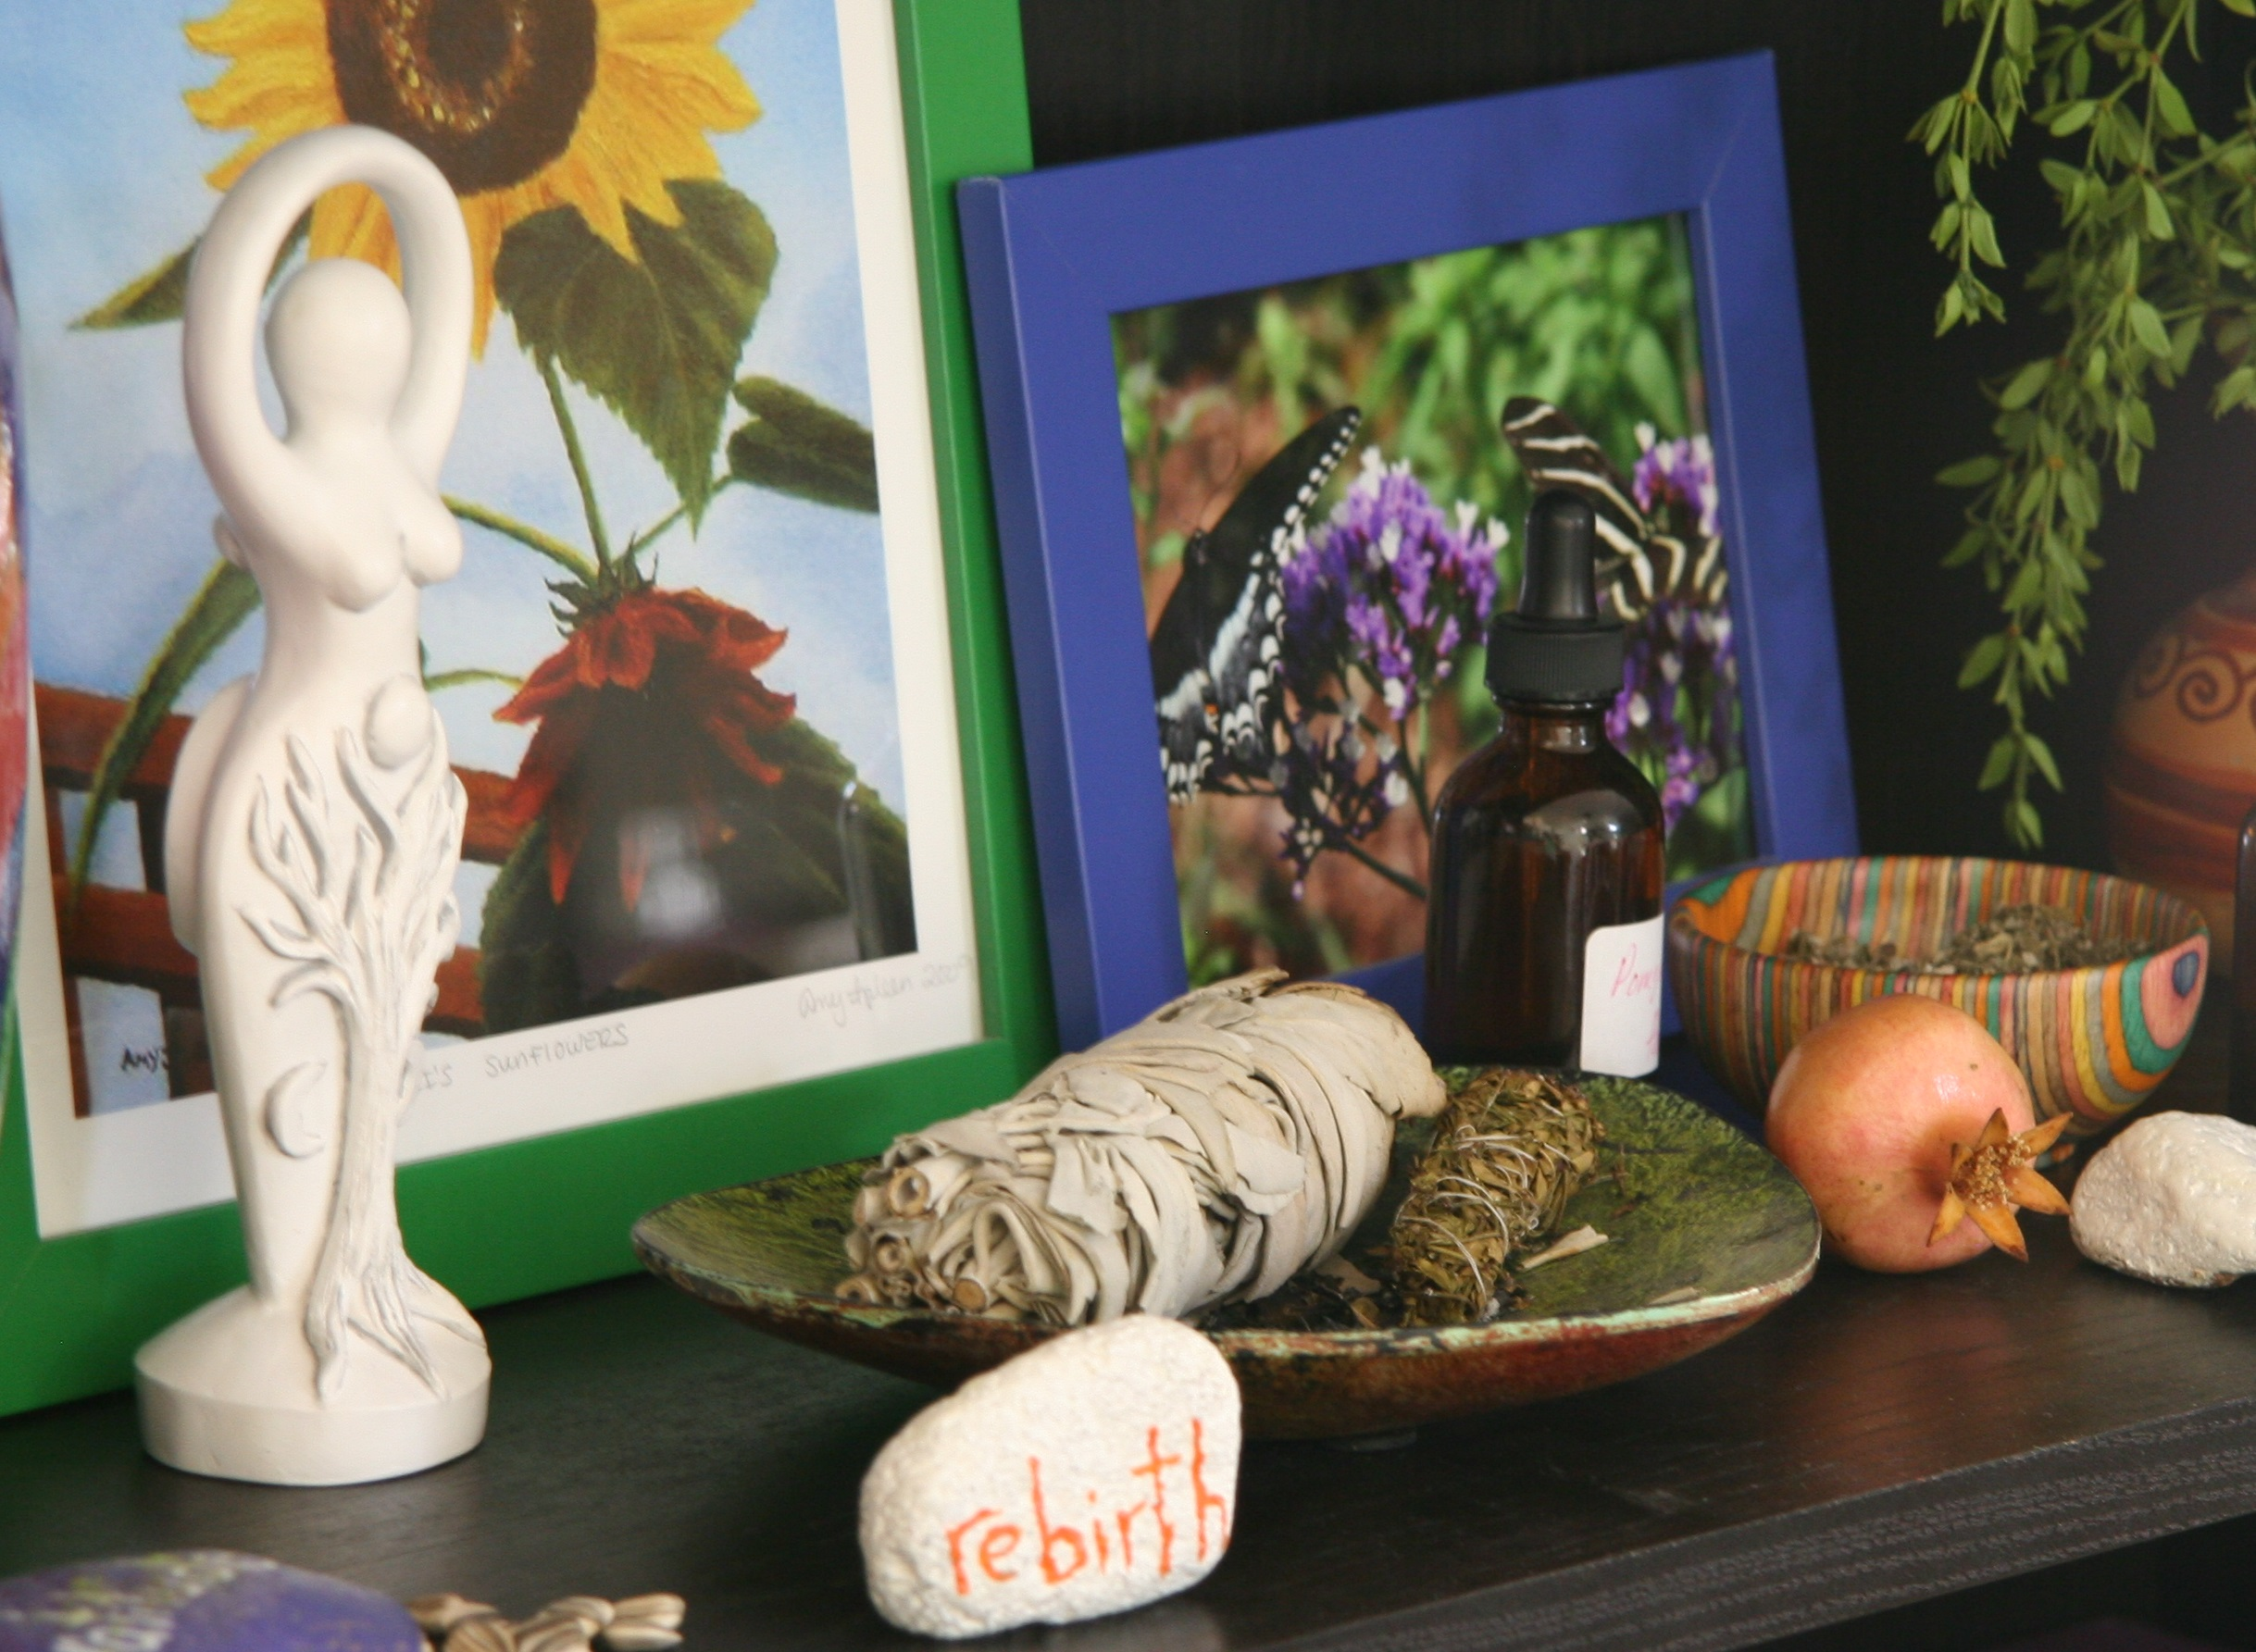 Herb altar - Creative Commons image by Latisha of Flickr.com